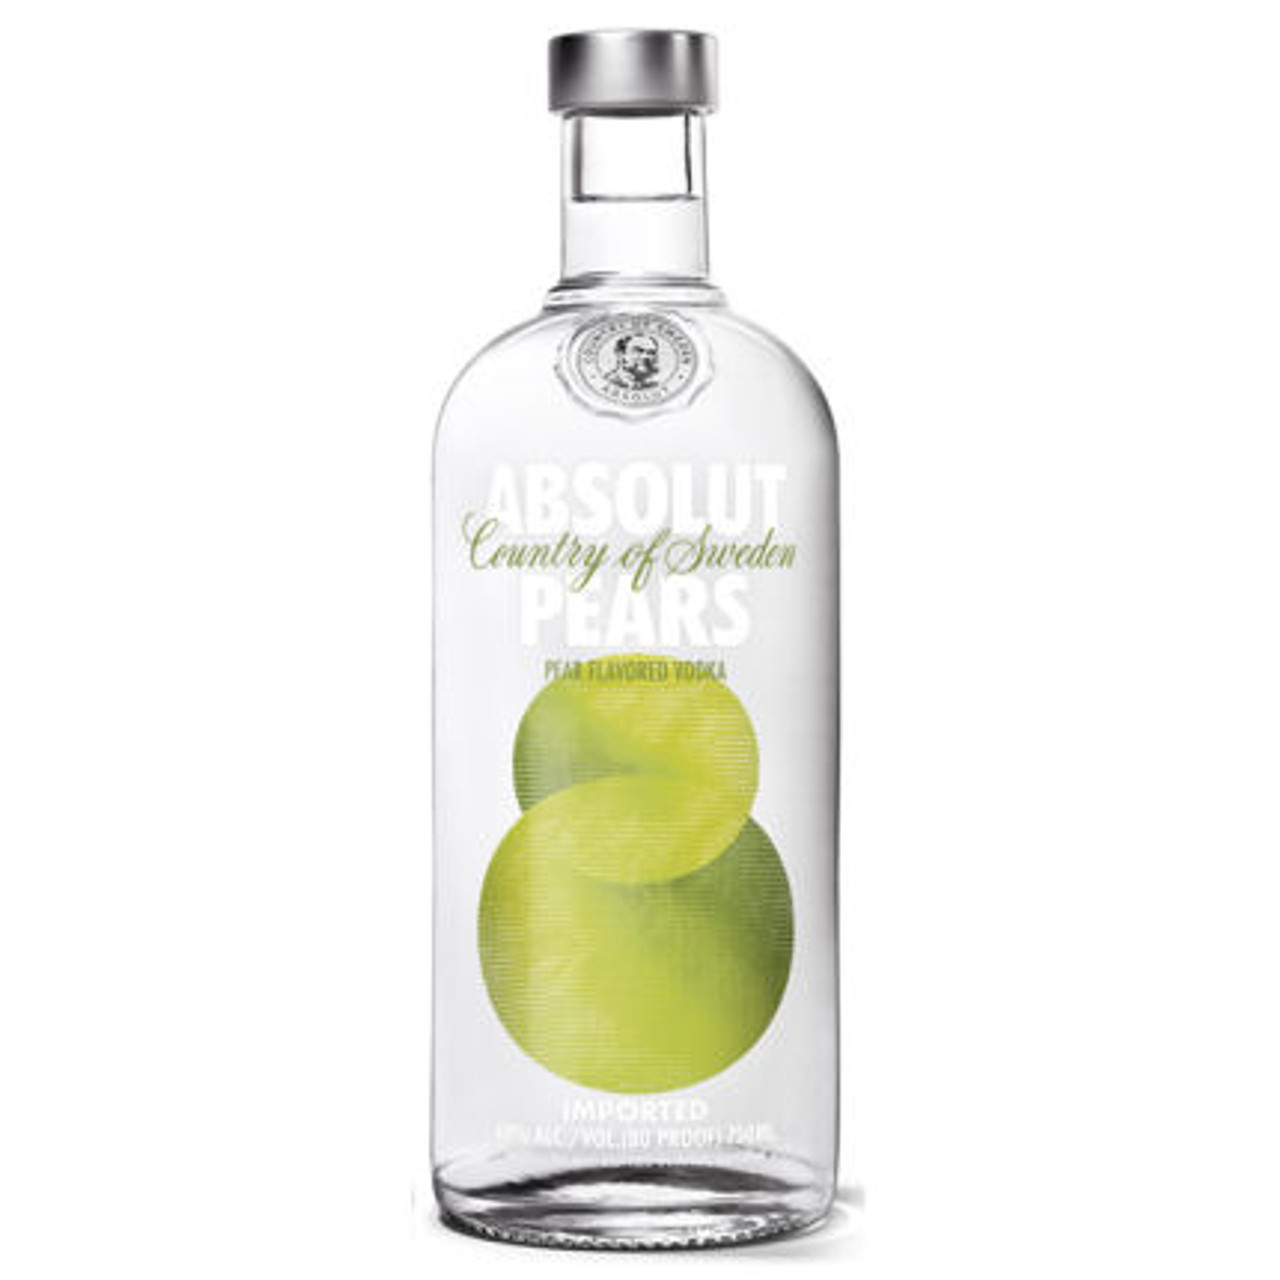 Absolut Pears Swedish Grain Vodka 750ml